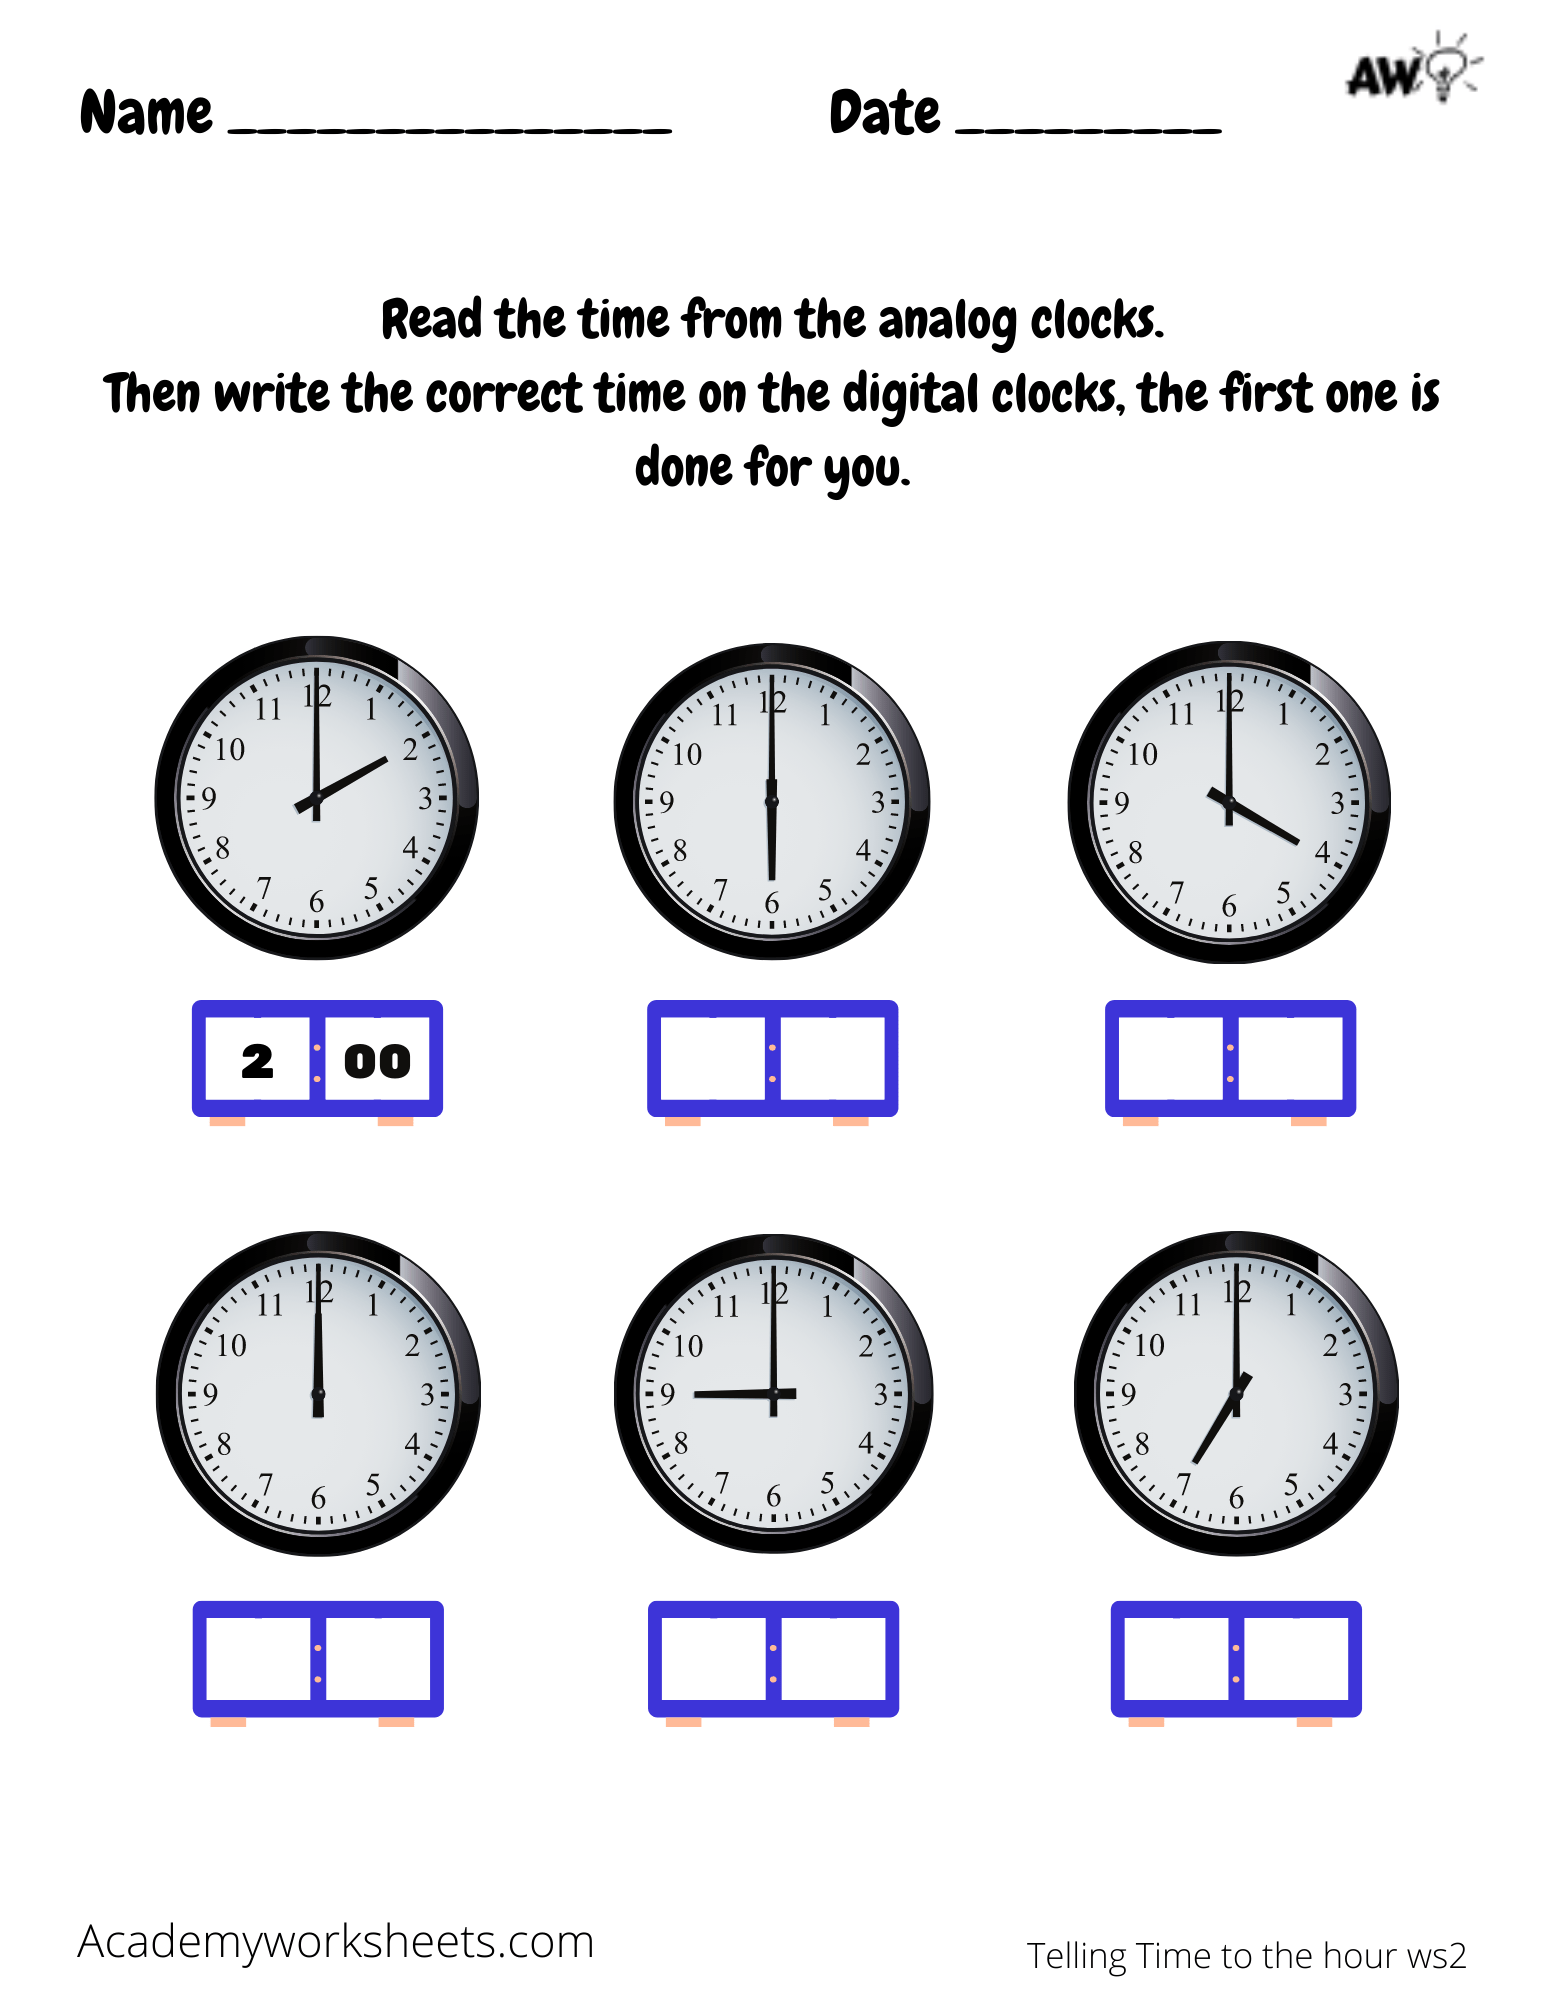 hight resolution of Clock Worksheets - Telling Time to the Hour - Academy Worksheets